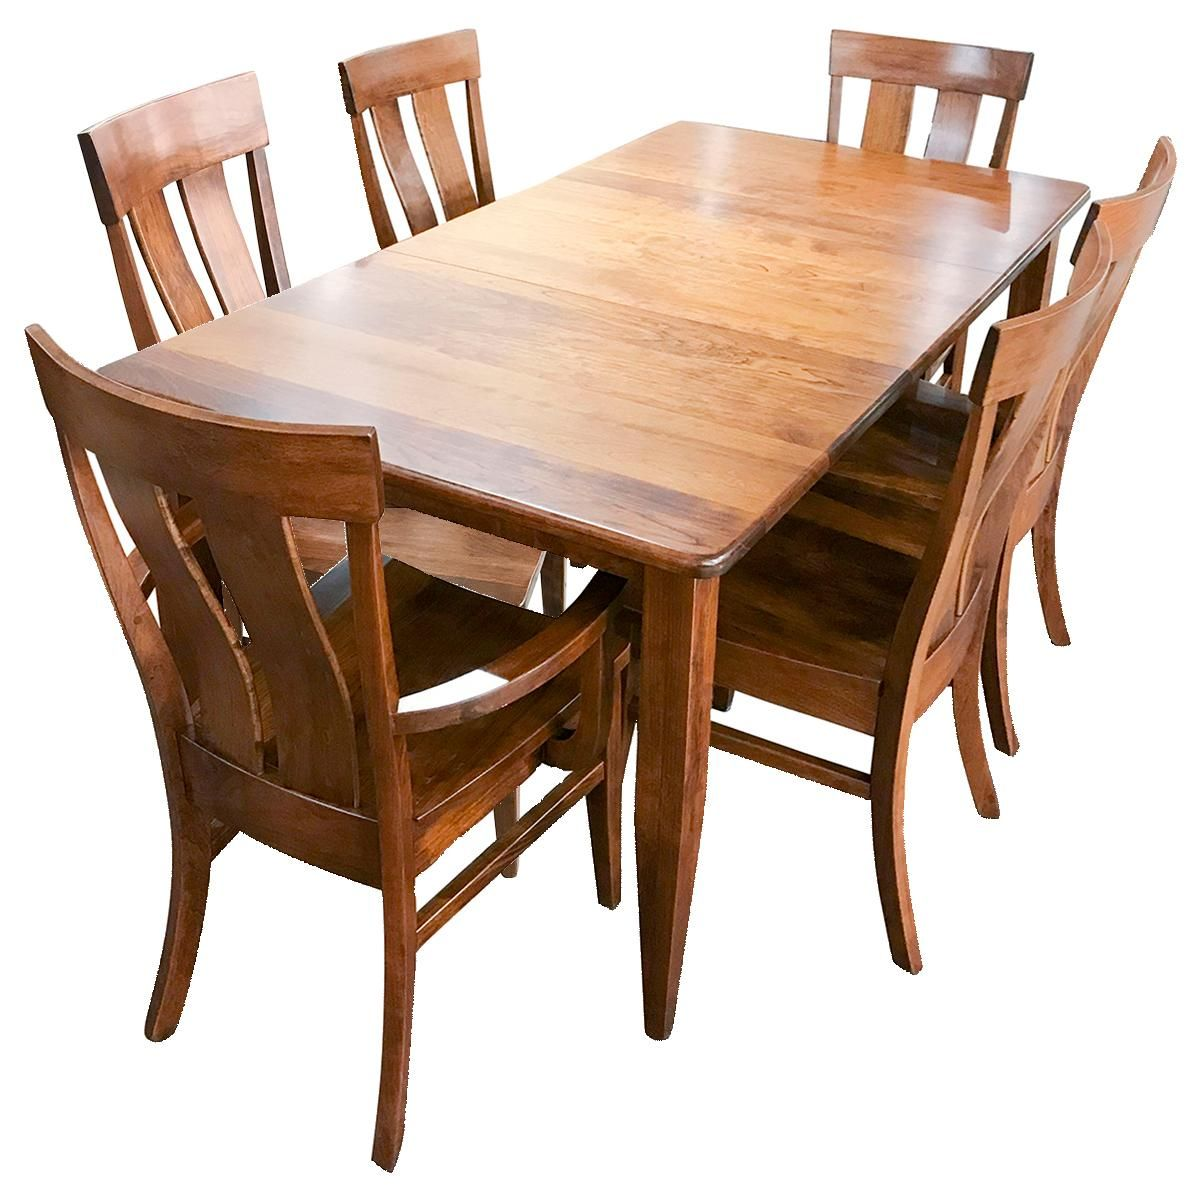 Daniel S Amish Collection Franklin 7 Piece Dining Set In Michael S Cherry Nebraska Furniture Mart 7 Piece Dining Set Dining Dining Set